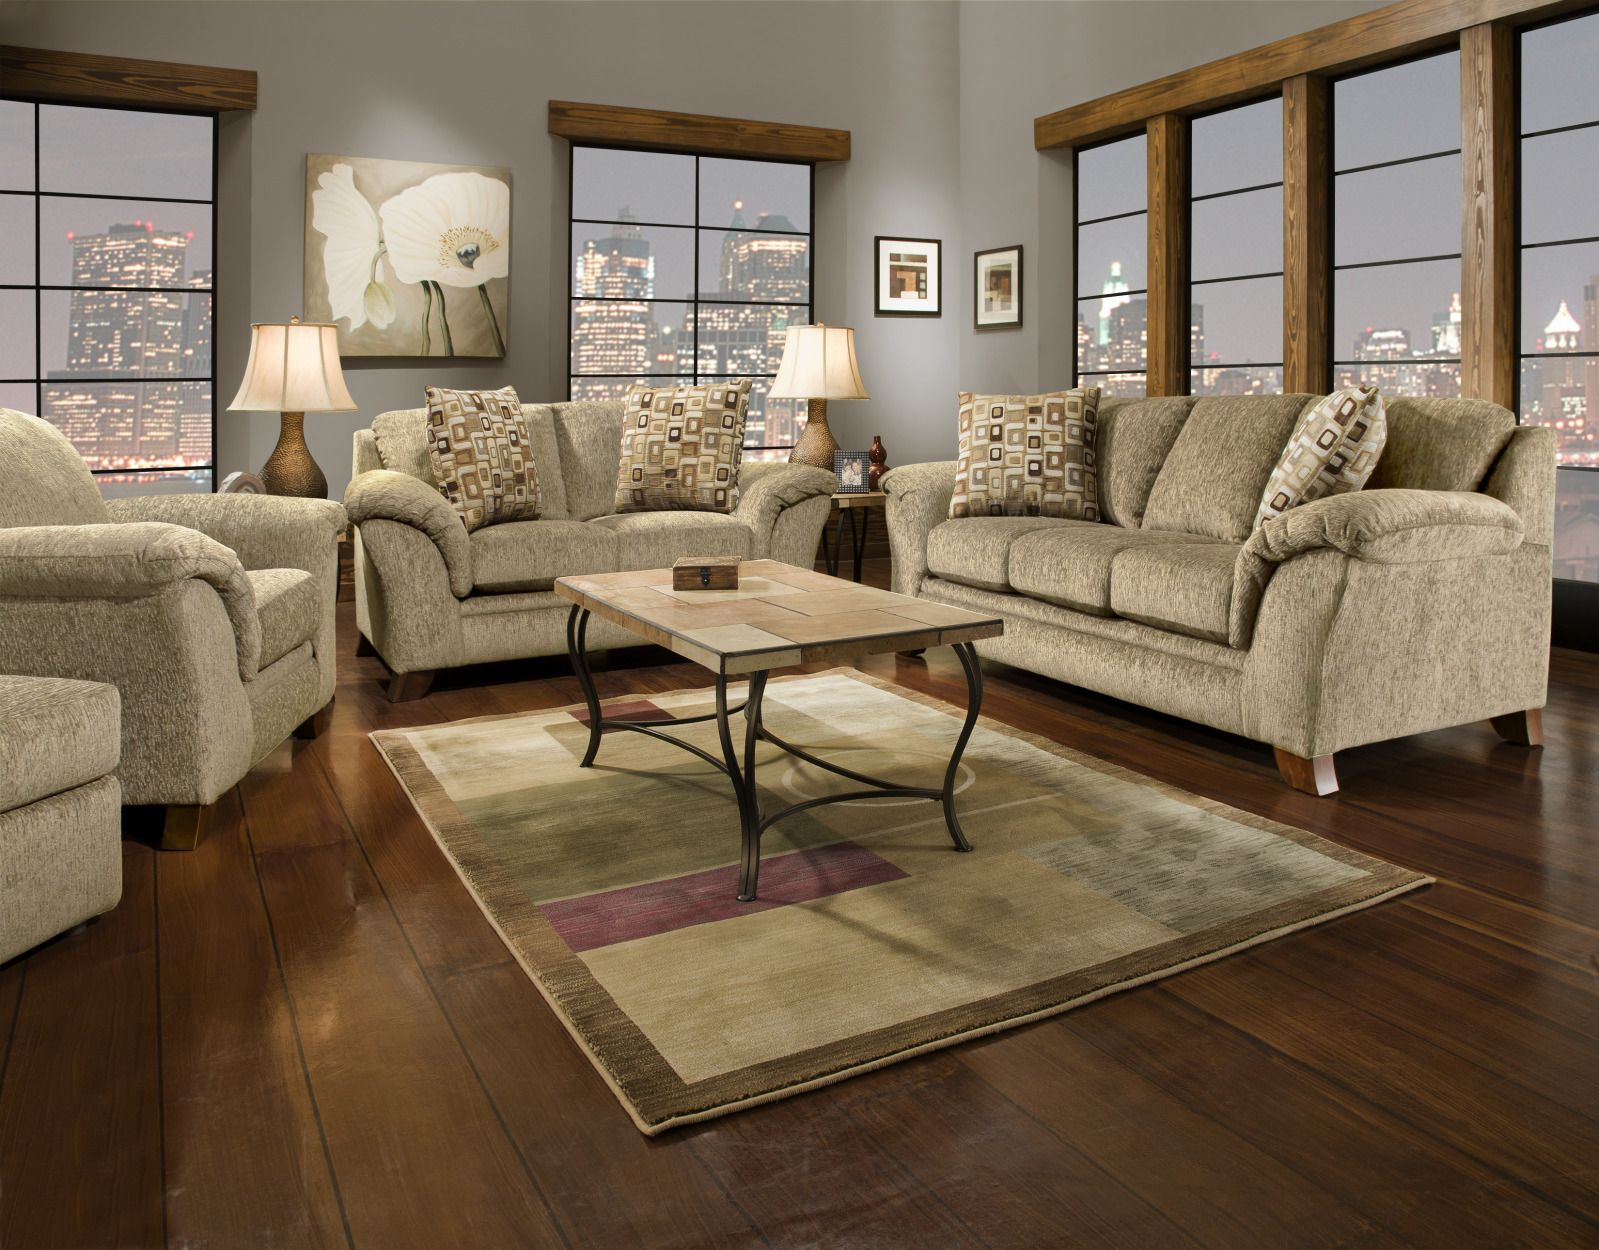 Pin By Kathy Foggia On Living Room Furniture Living Room Sets Affordable Furniture #schewels #living #room #furniture